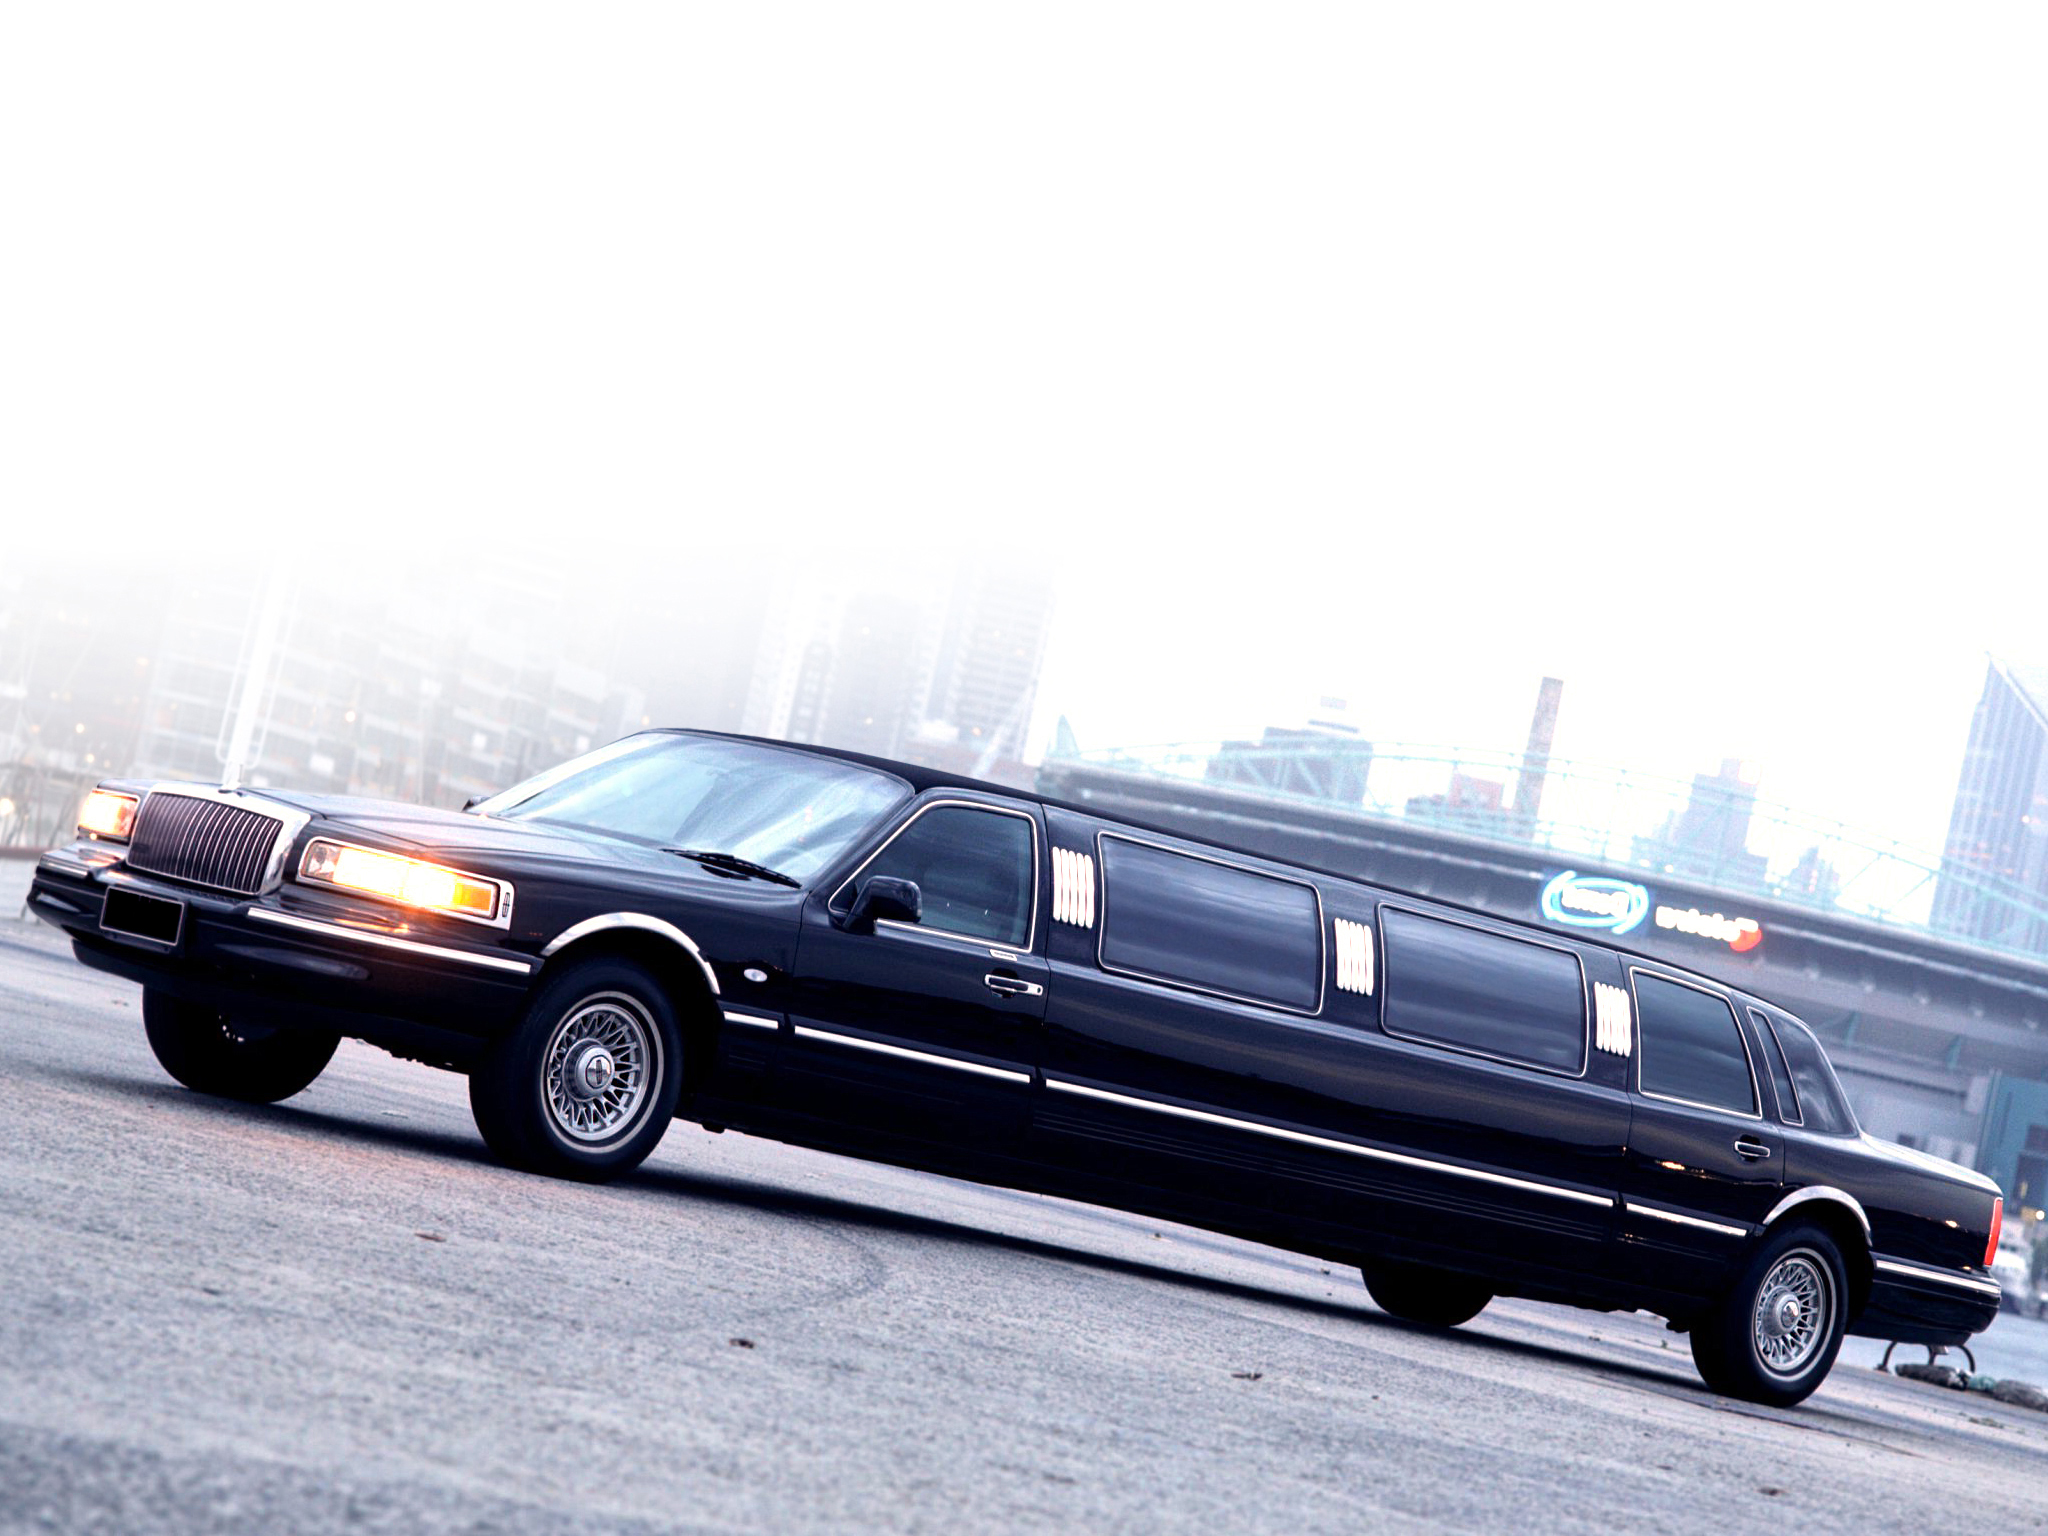 Best limousines in the world biggest limousines best limos limo joe pinterest limo